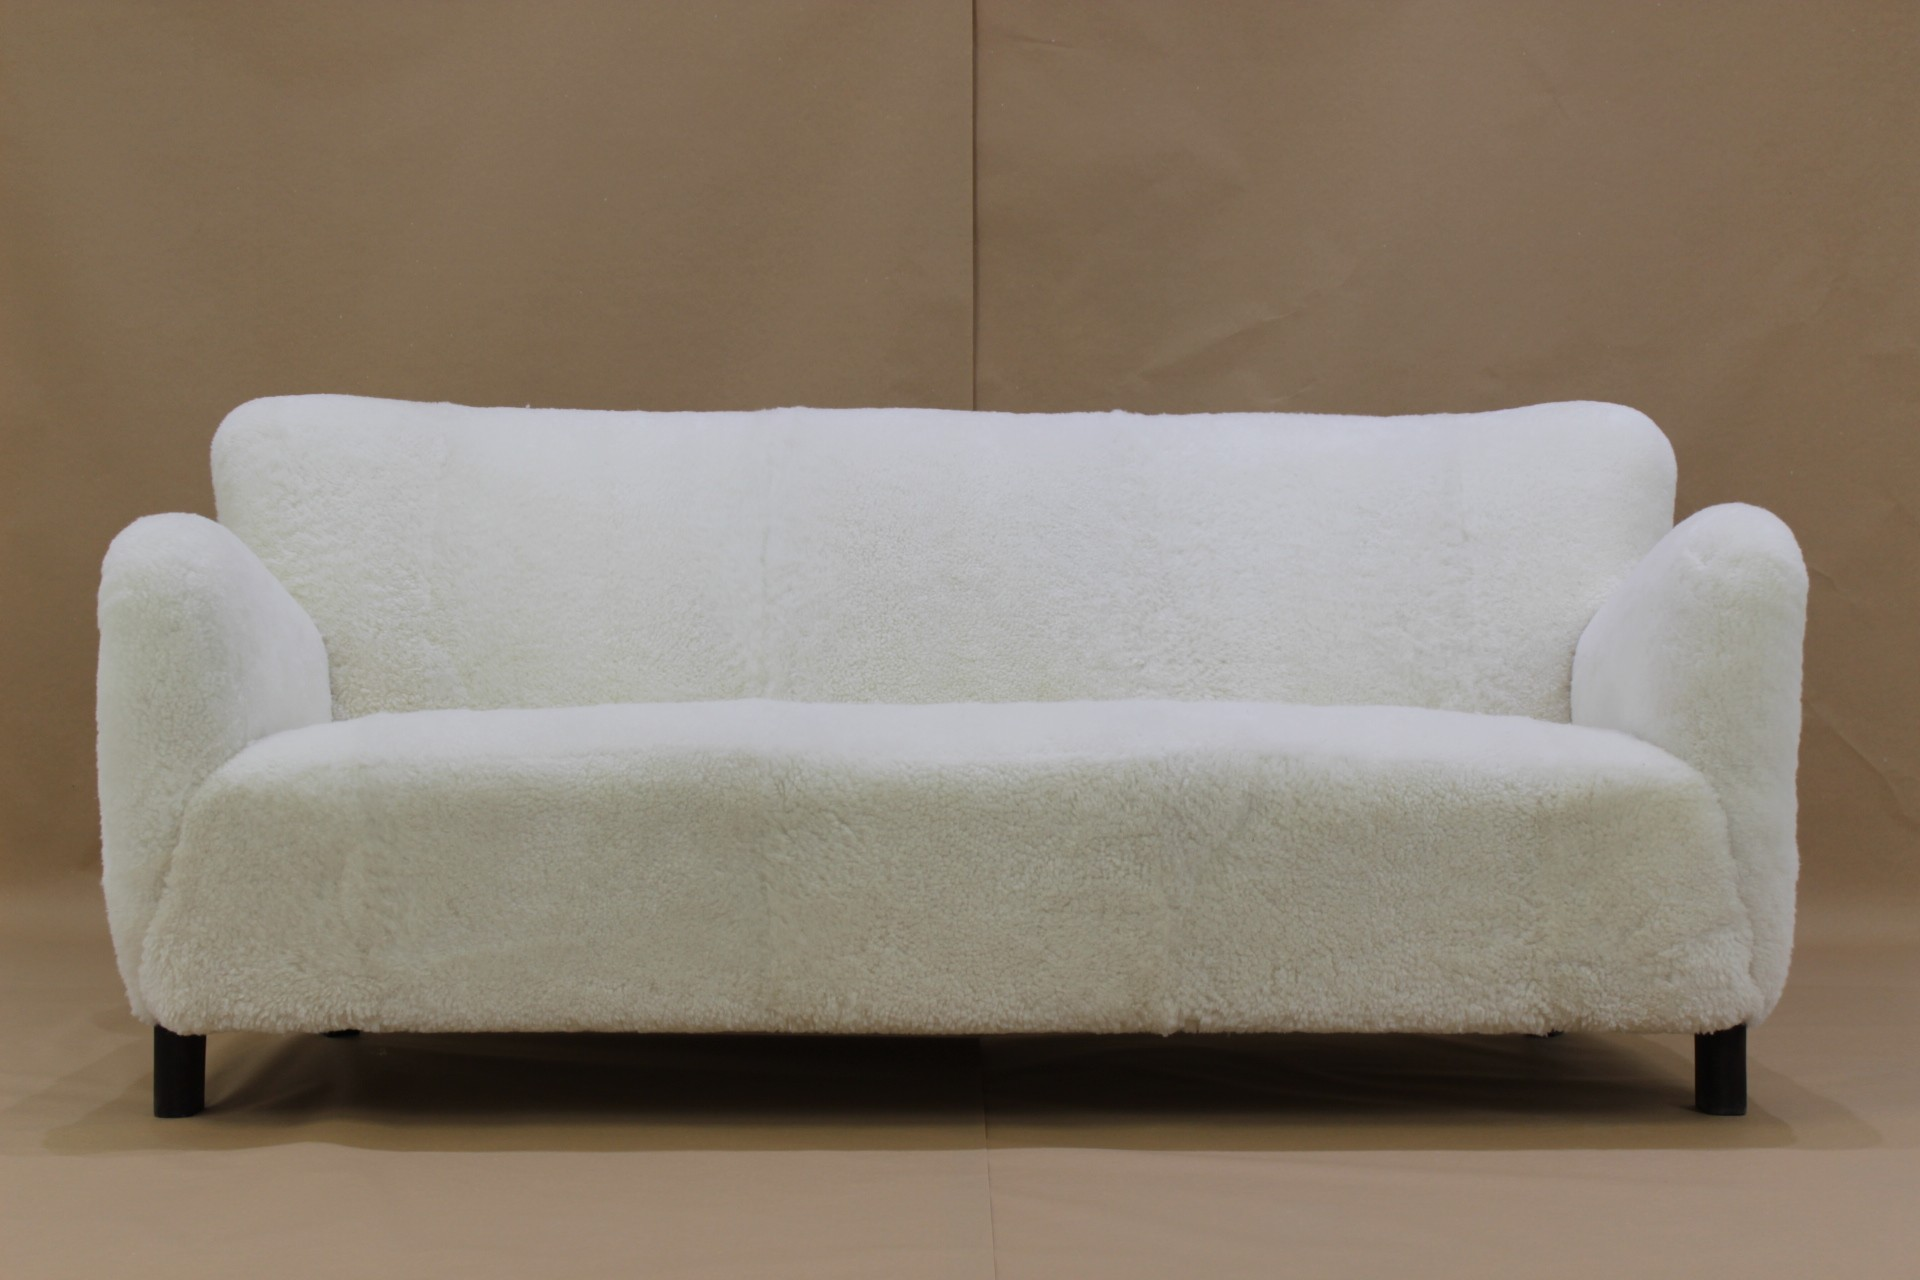 3 Seater vintage Sofa in Sheep Skin model 1669A by Fritz Hansen